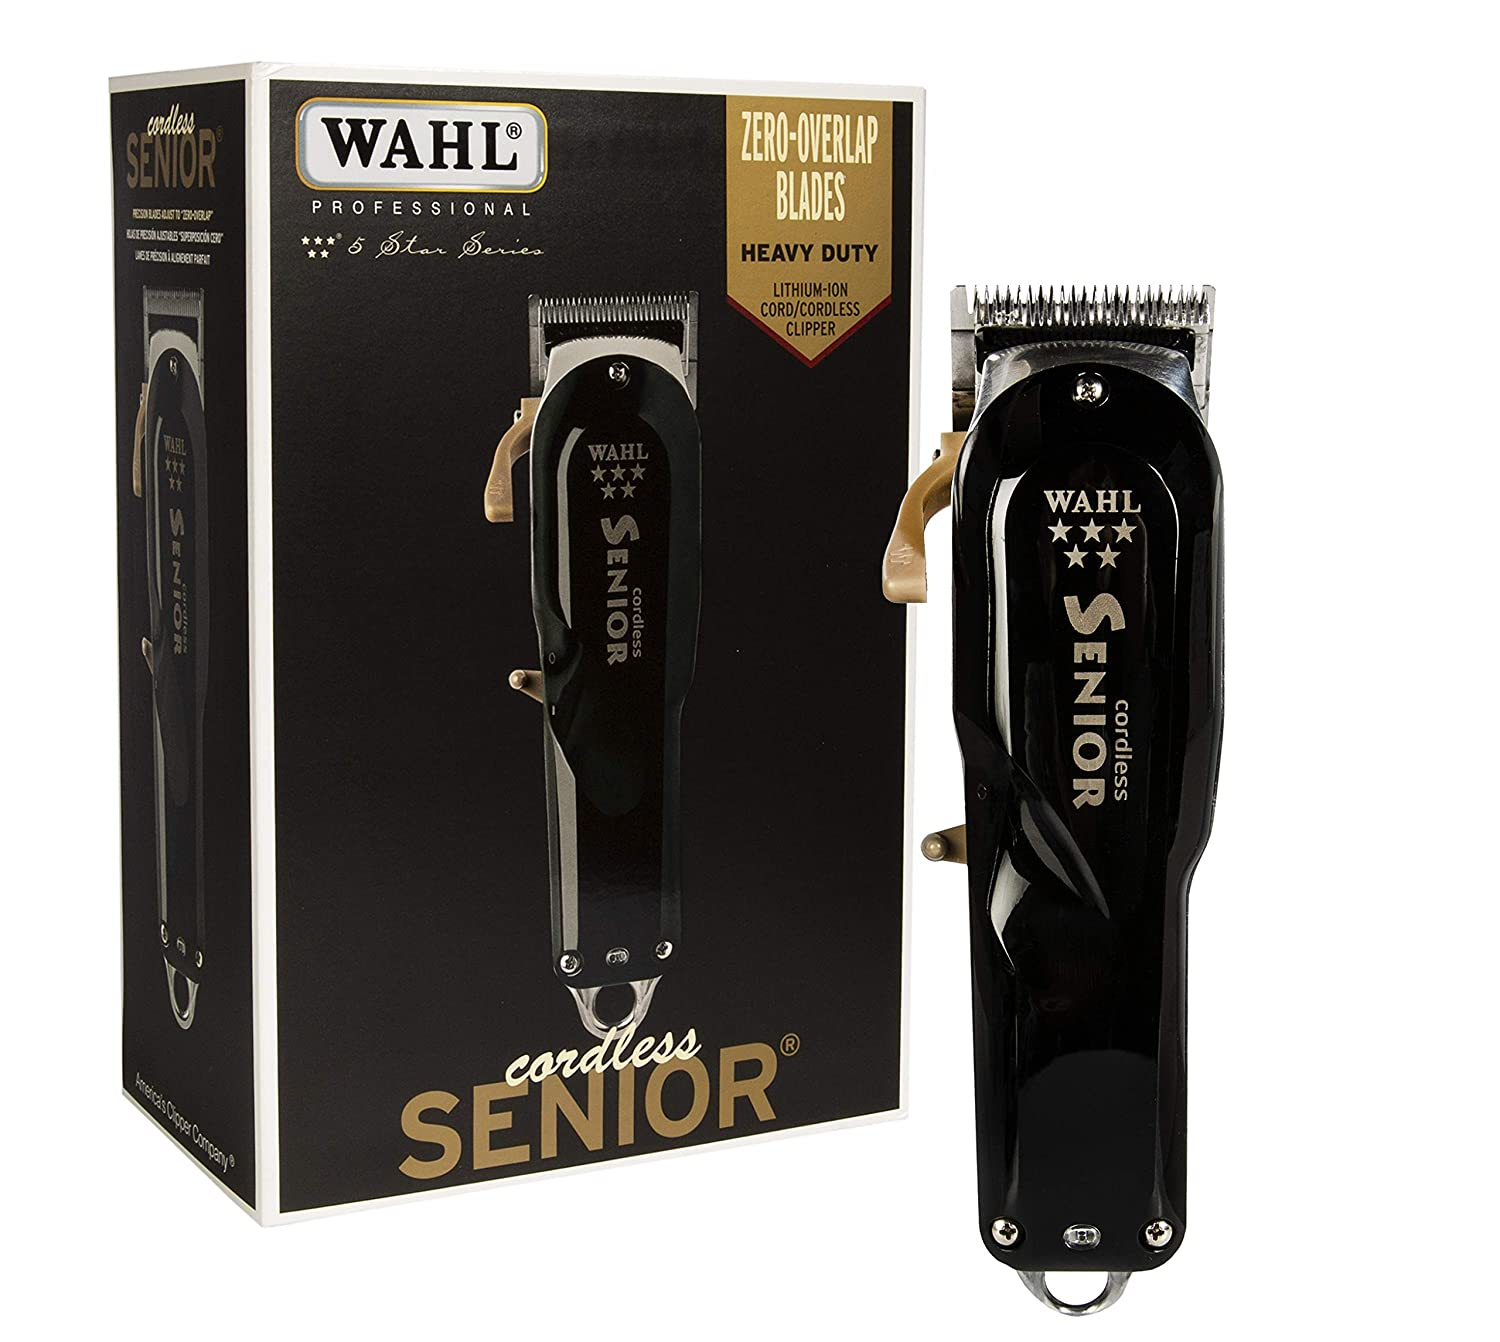 Wahl Professional 5-Star Series Cordless Senior